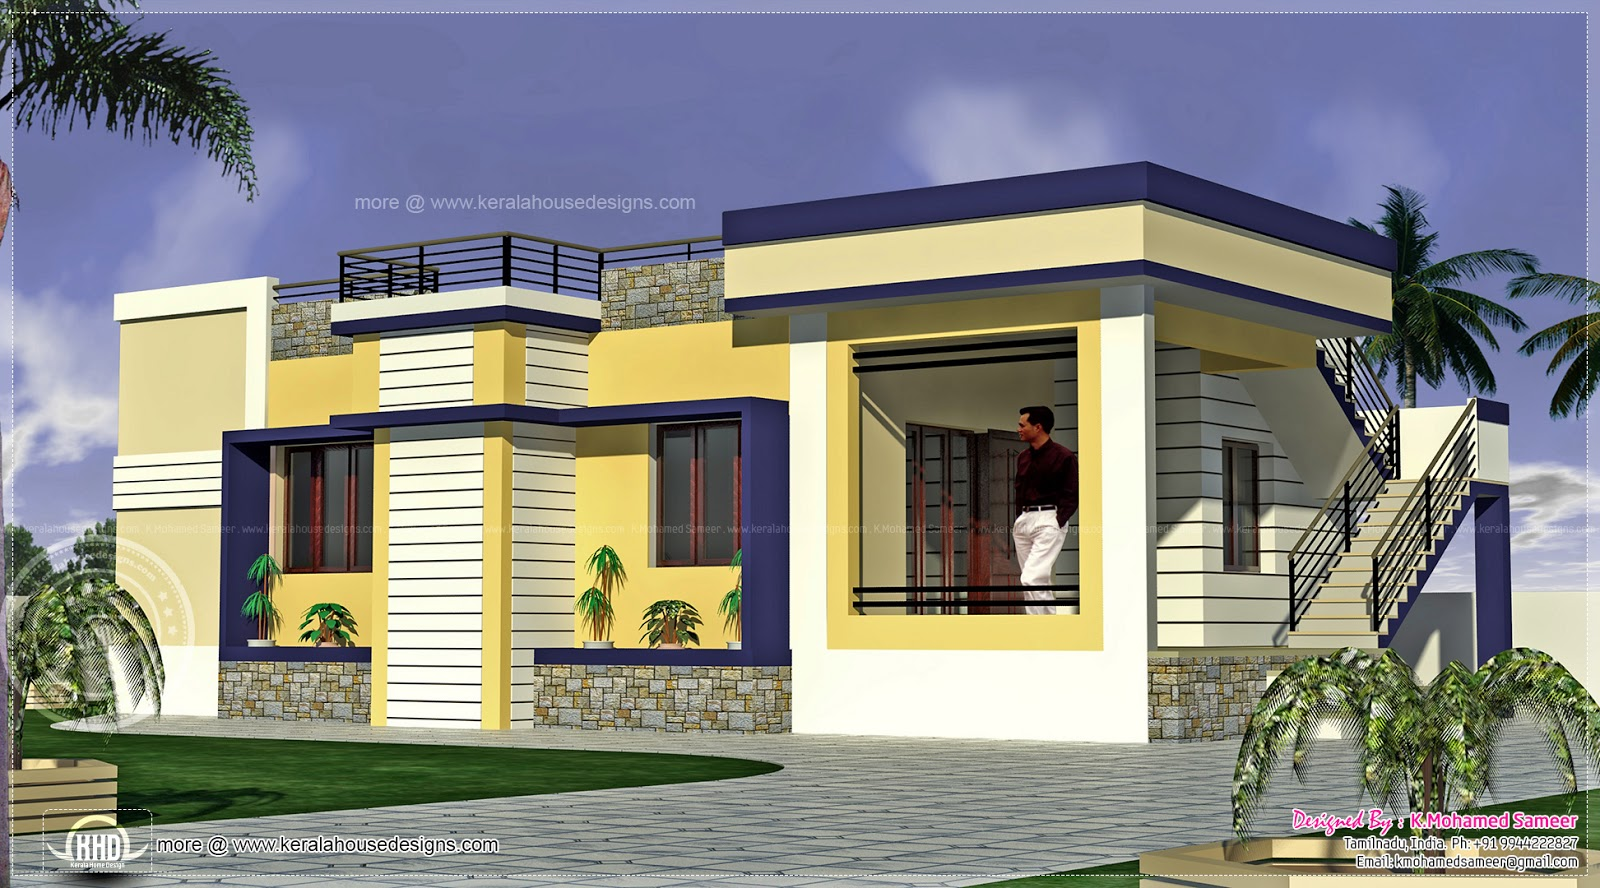 Kerala tamil nadu house plans 1000 sq ft house plans 1000 for 1000 square feet house plan kerala model